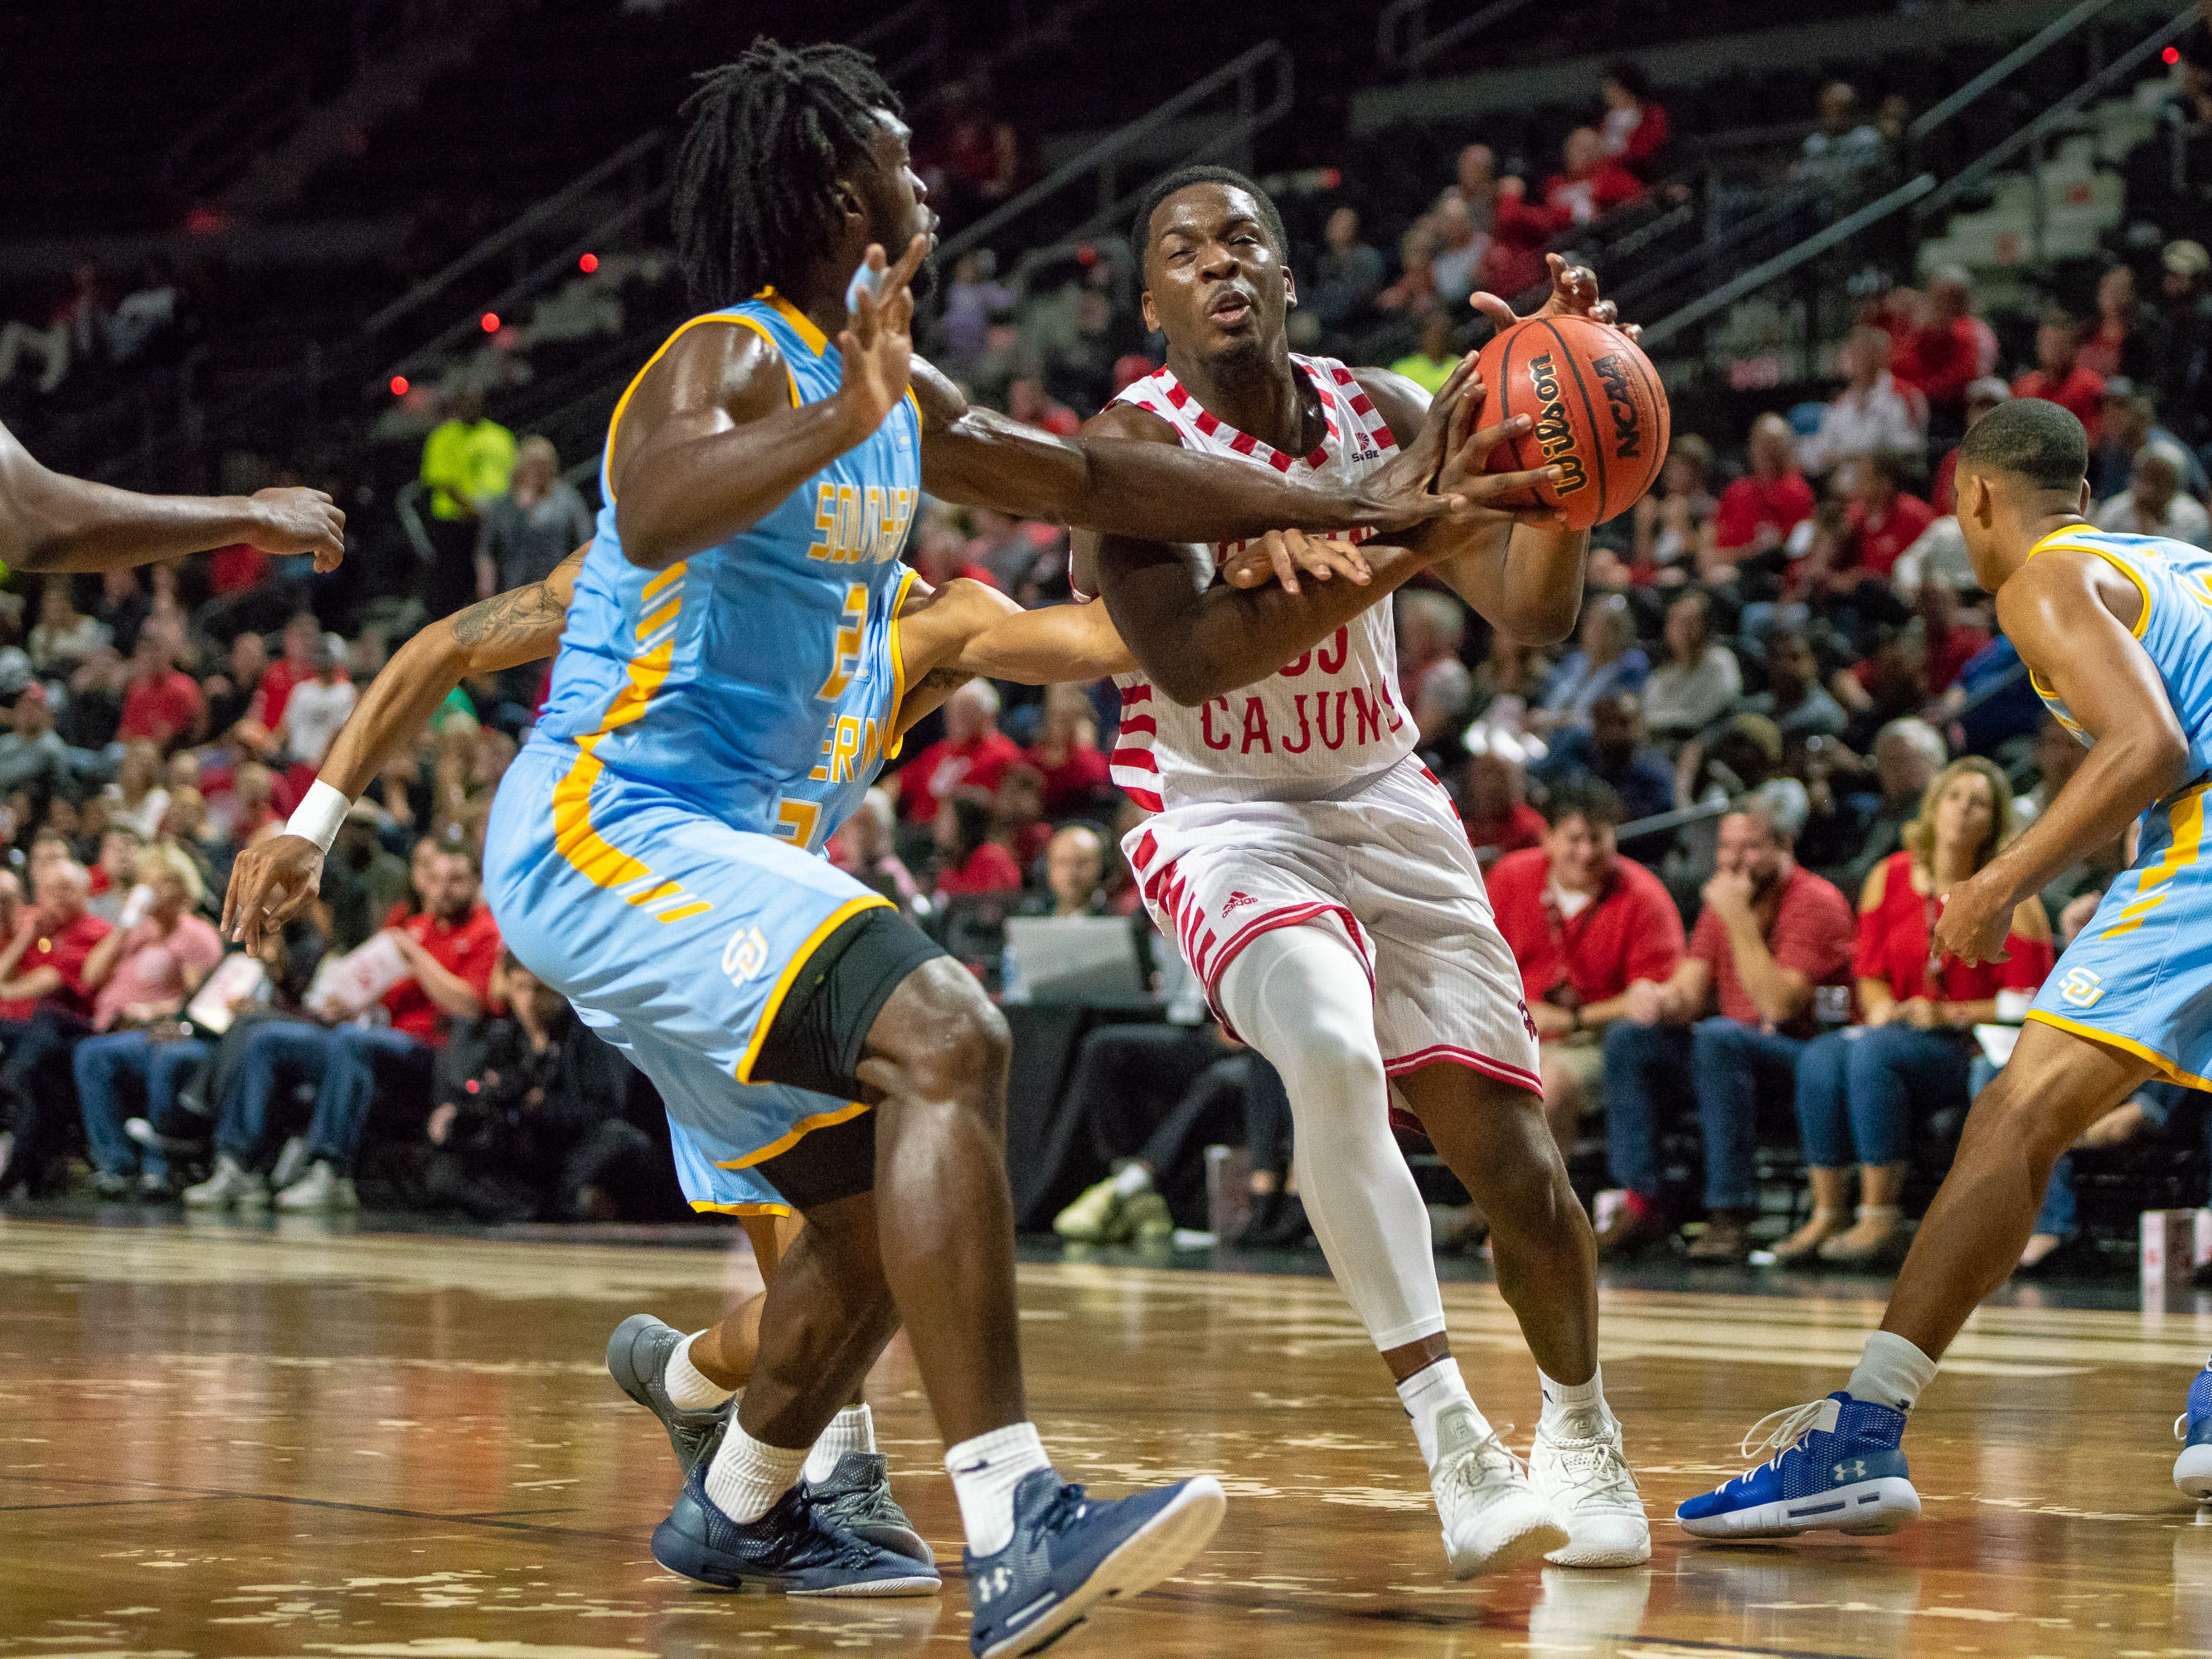 UL's Marcus Stroman gets fouled while going to the goal as the Ragin' Cajuns play against the Southern University Jaguars at the Cajundome on December 1, 2018.